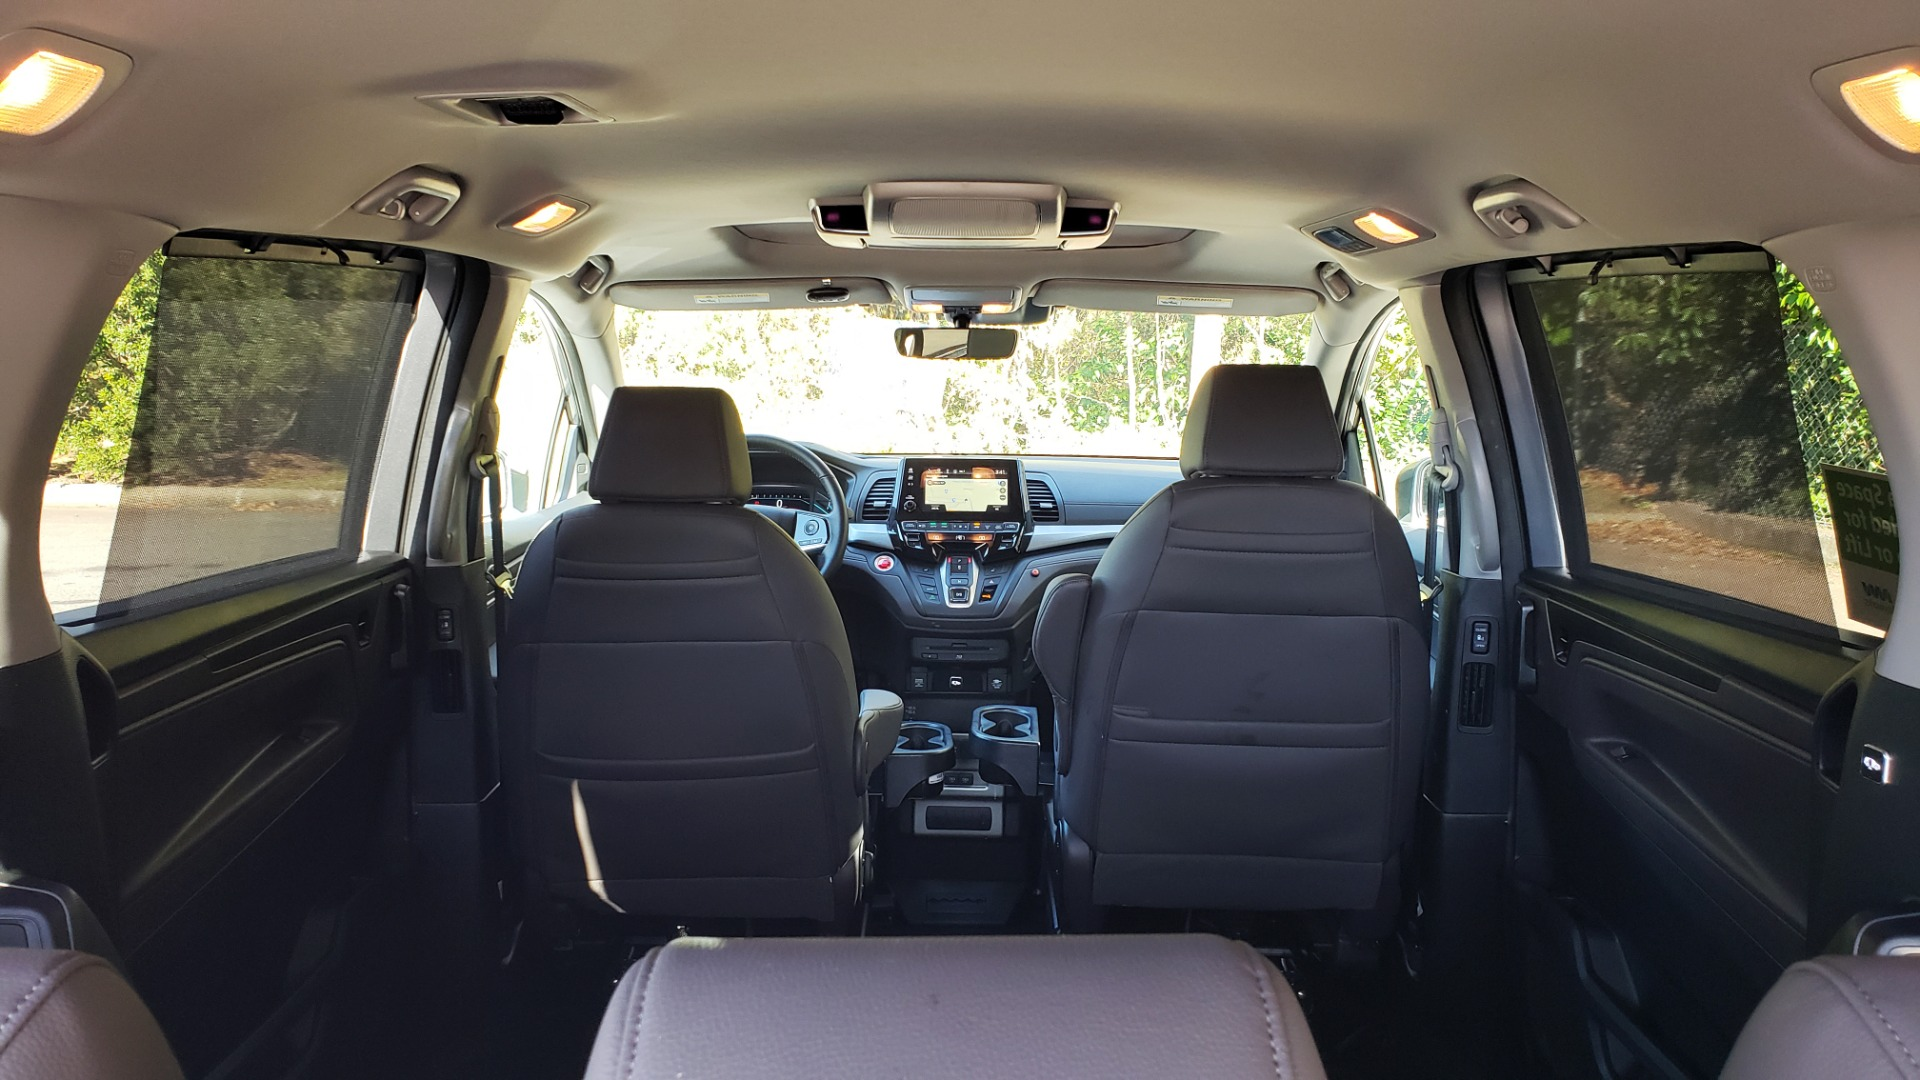 Used 2019 Honda ODYSSEY EX-L BRAUNABILITY / NAV / RES / LKA / BLUE-RAY / SUNROOF / REARVIEW for sale $49,999 at Formula Imports in Charlotte NC 28227 52